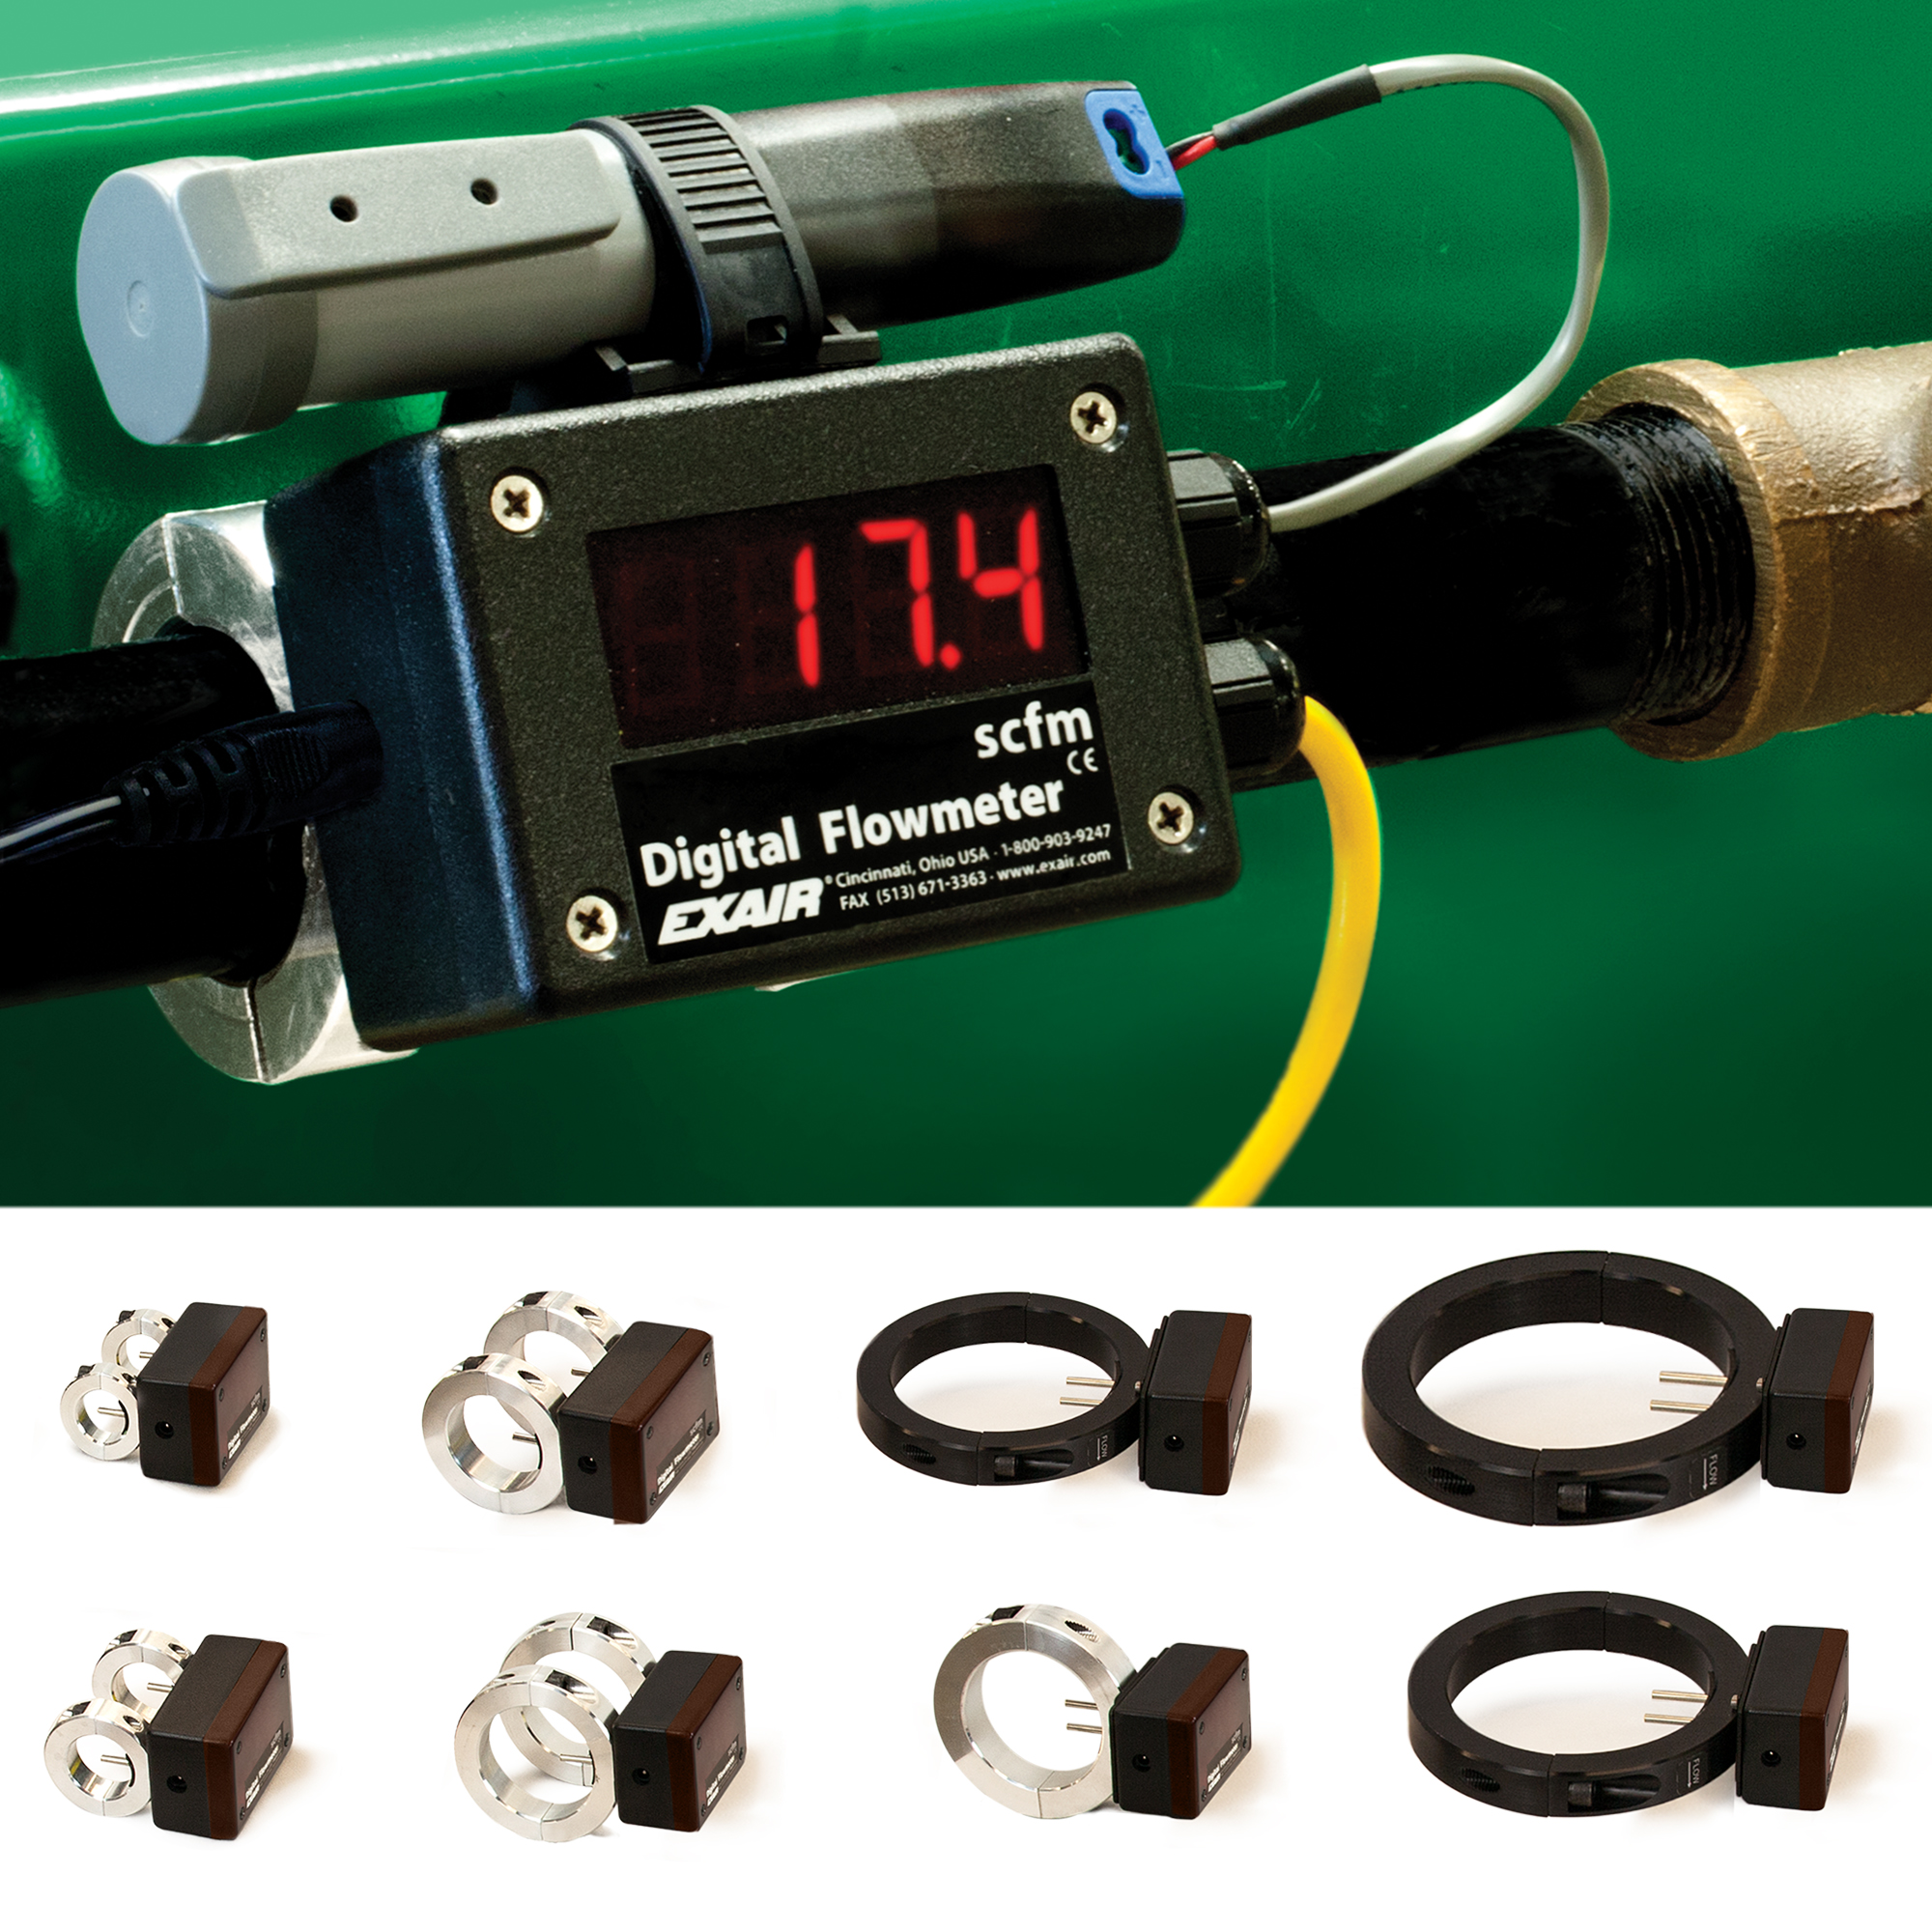 "EXAIR stock Digital Flowmeters from 1/2"" through 4"" for schedule 40 iron pipe."